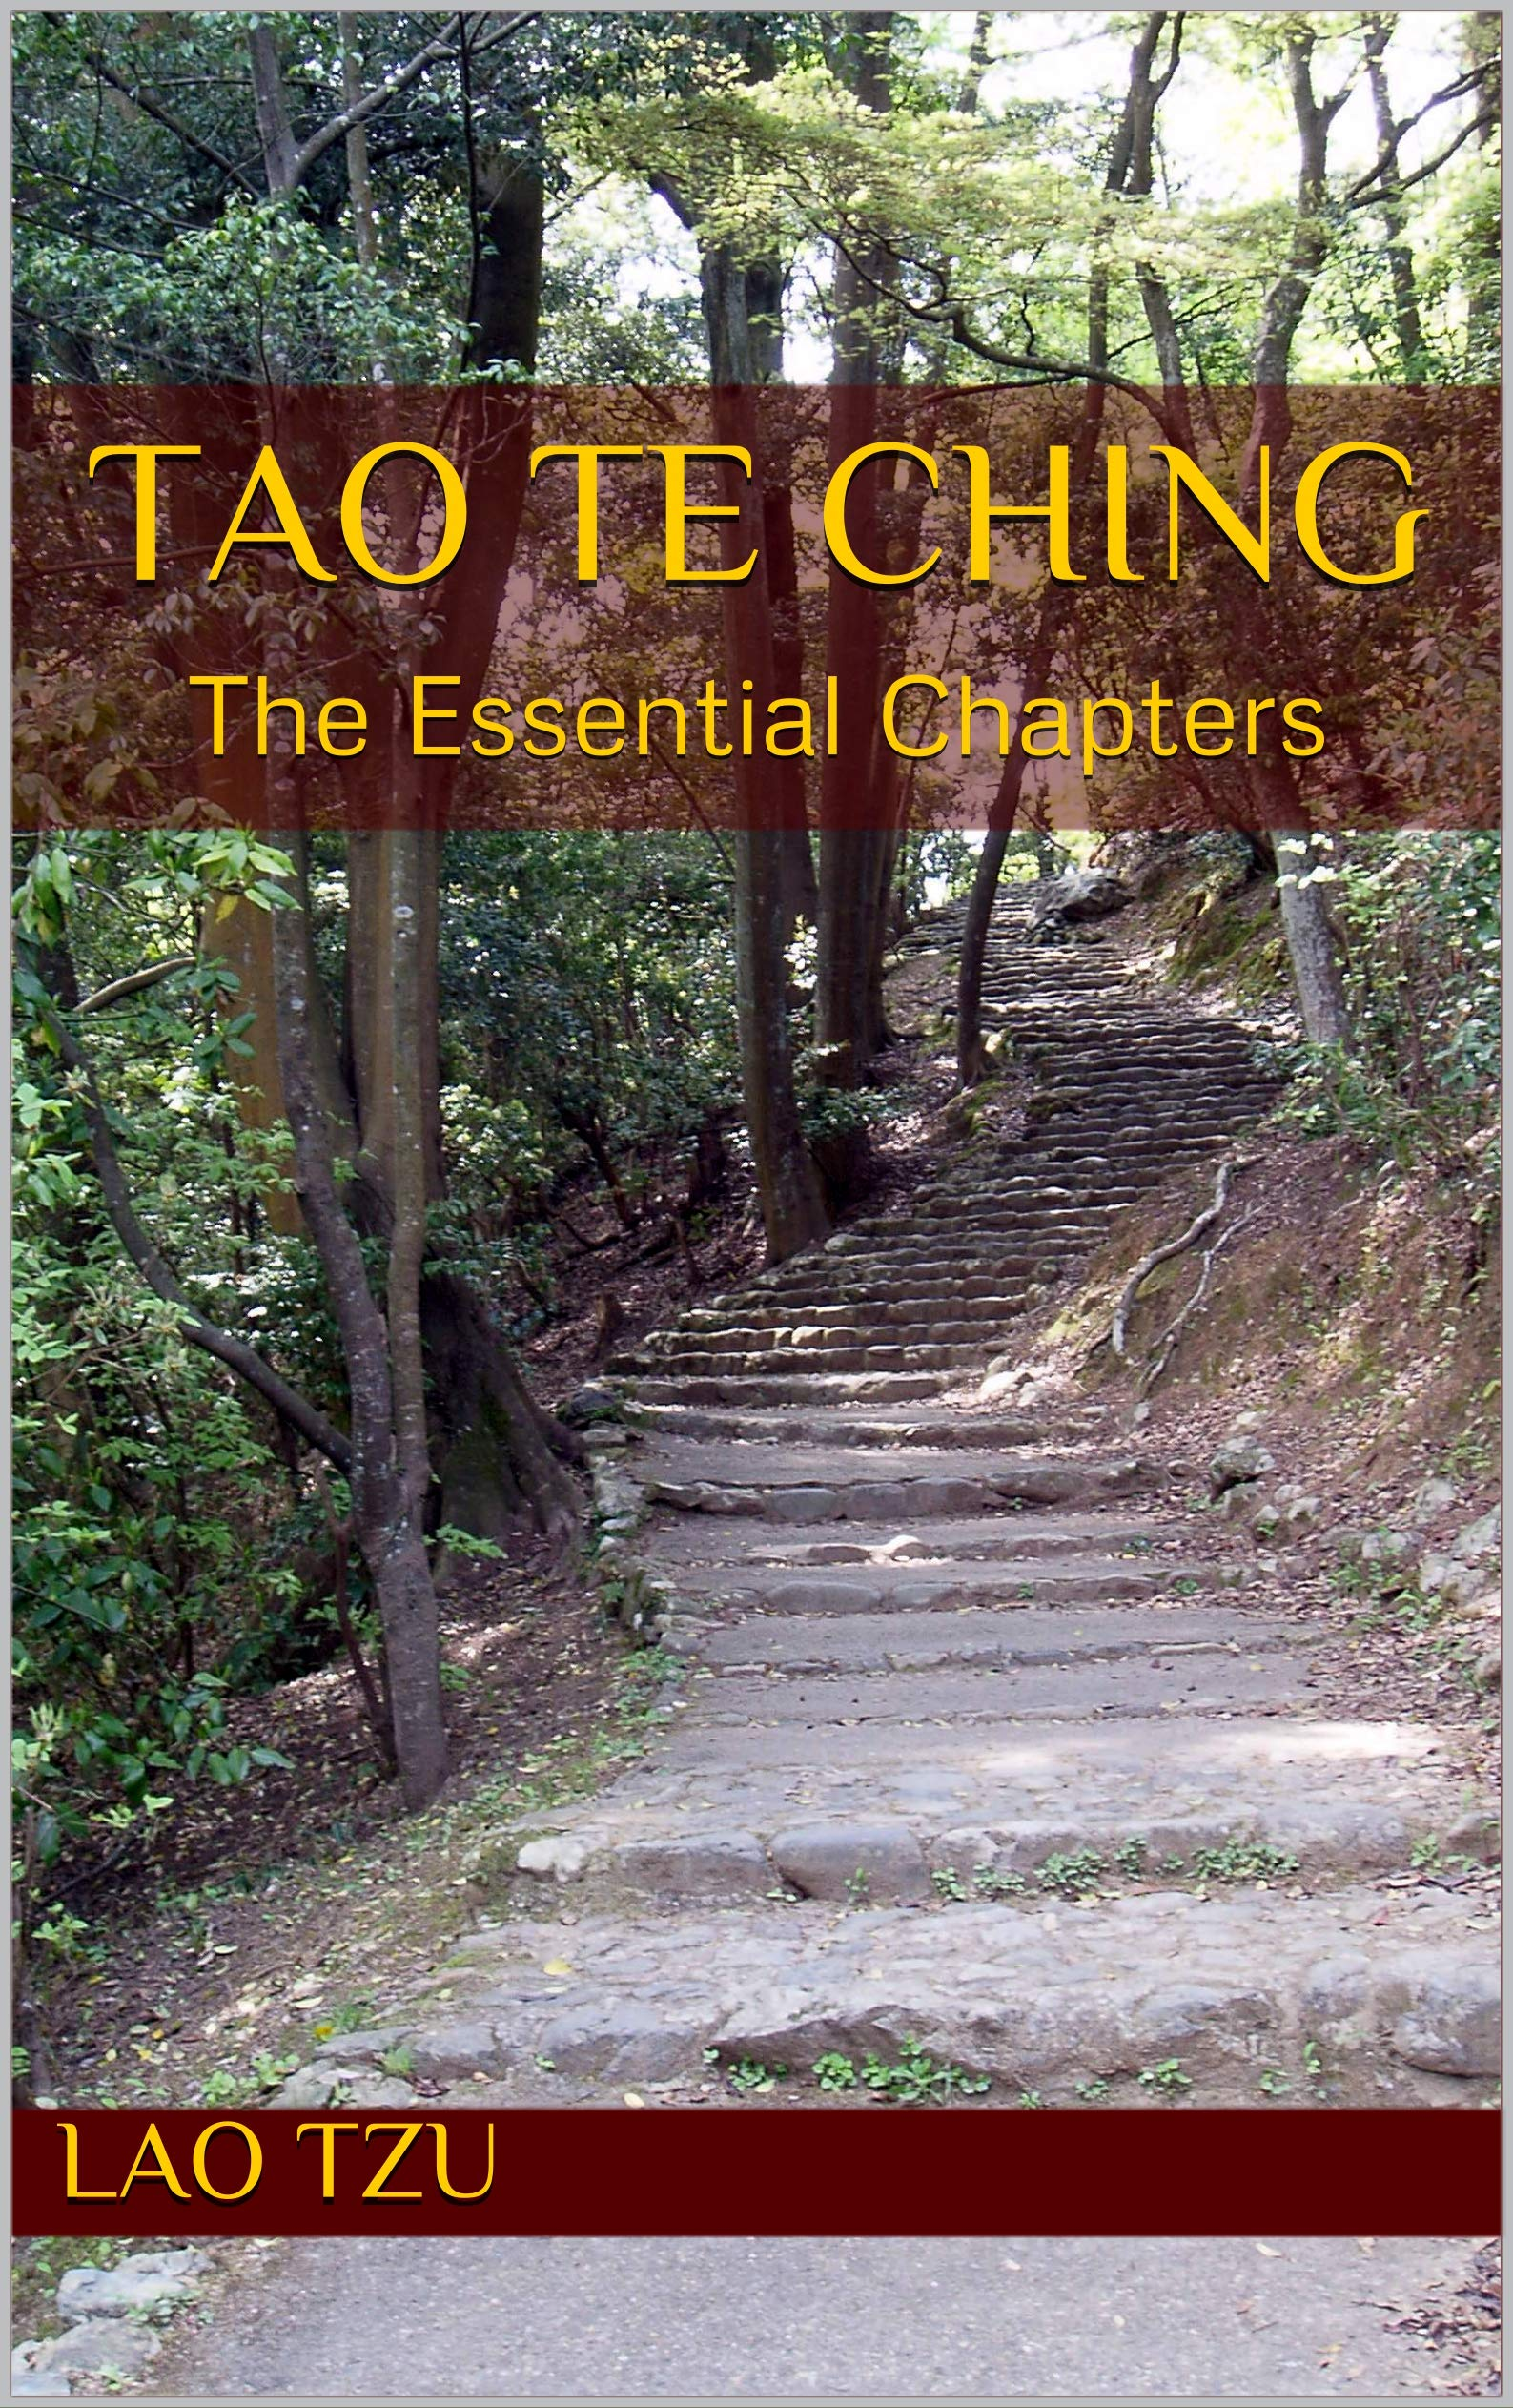 Tao Te Ching: The Essential Chapters